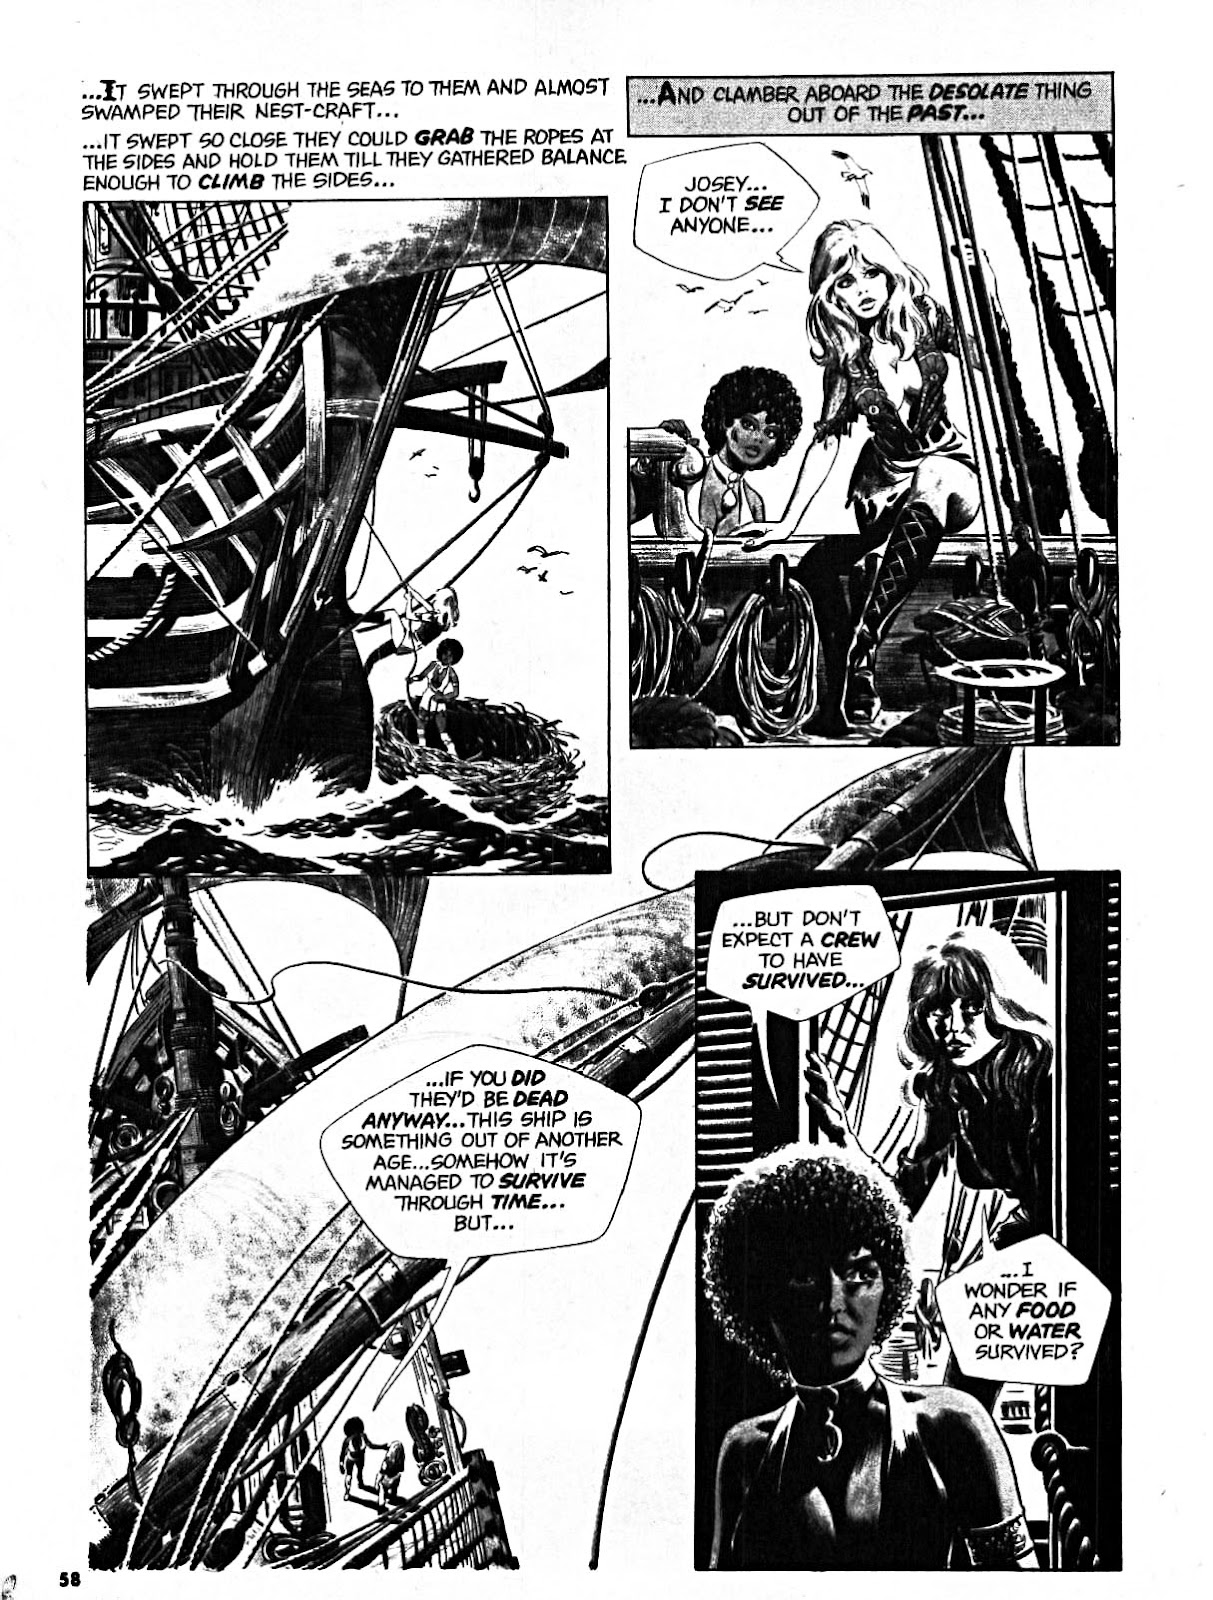 Scream (1973) issue 8 - Page 56